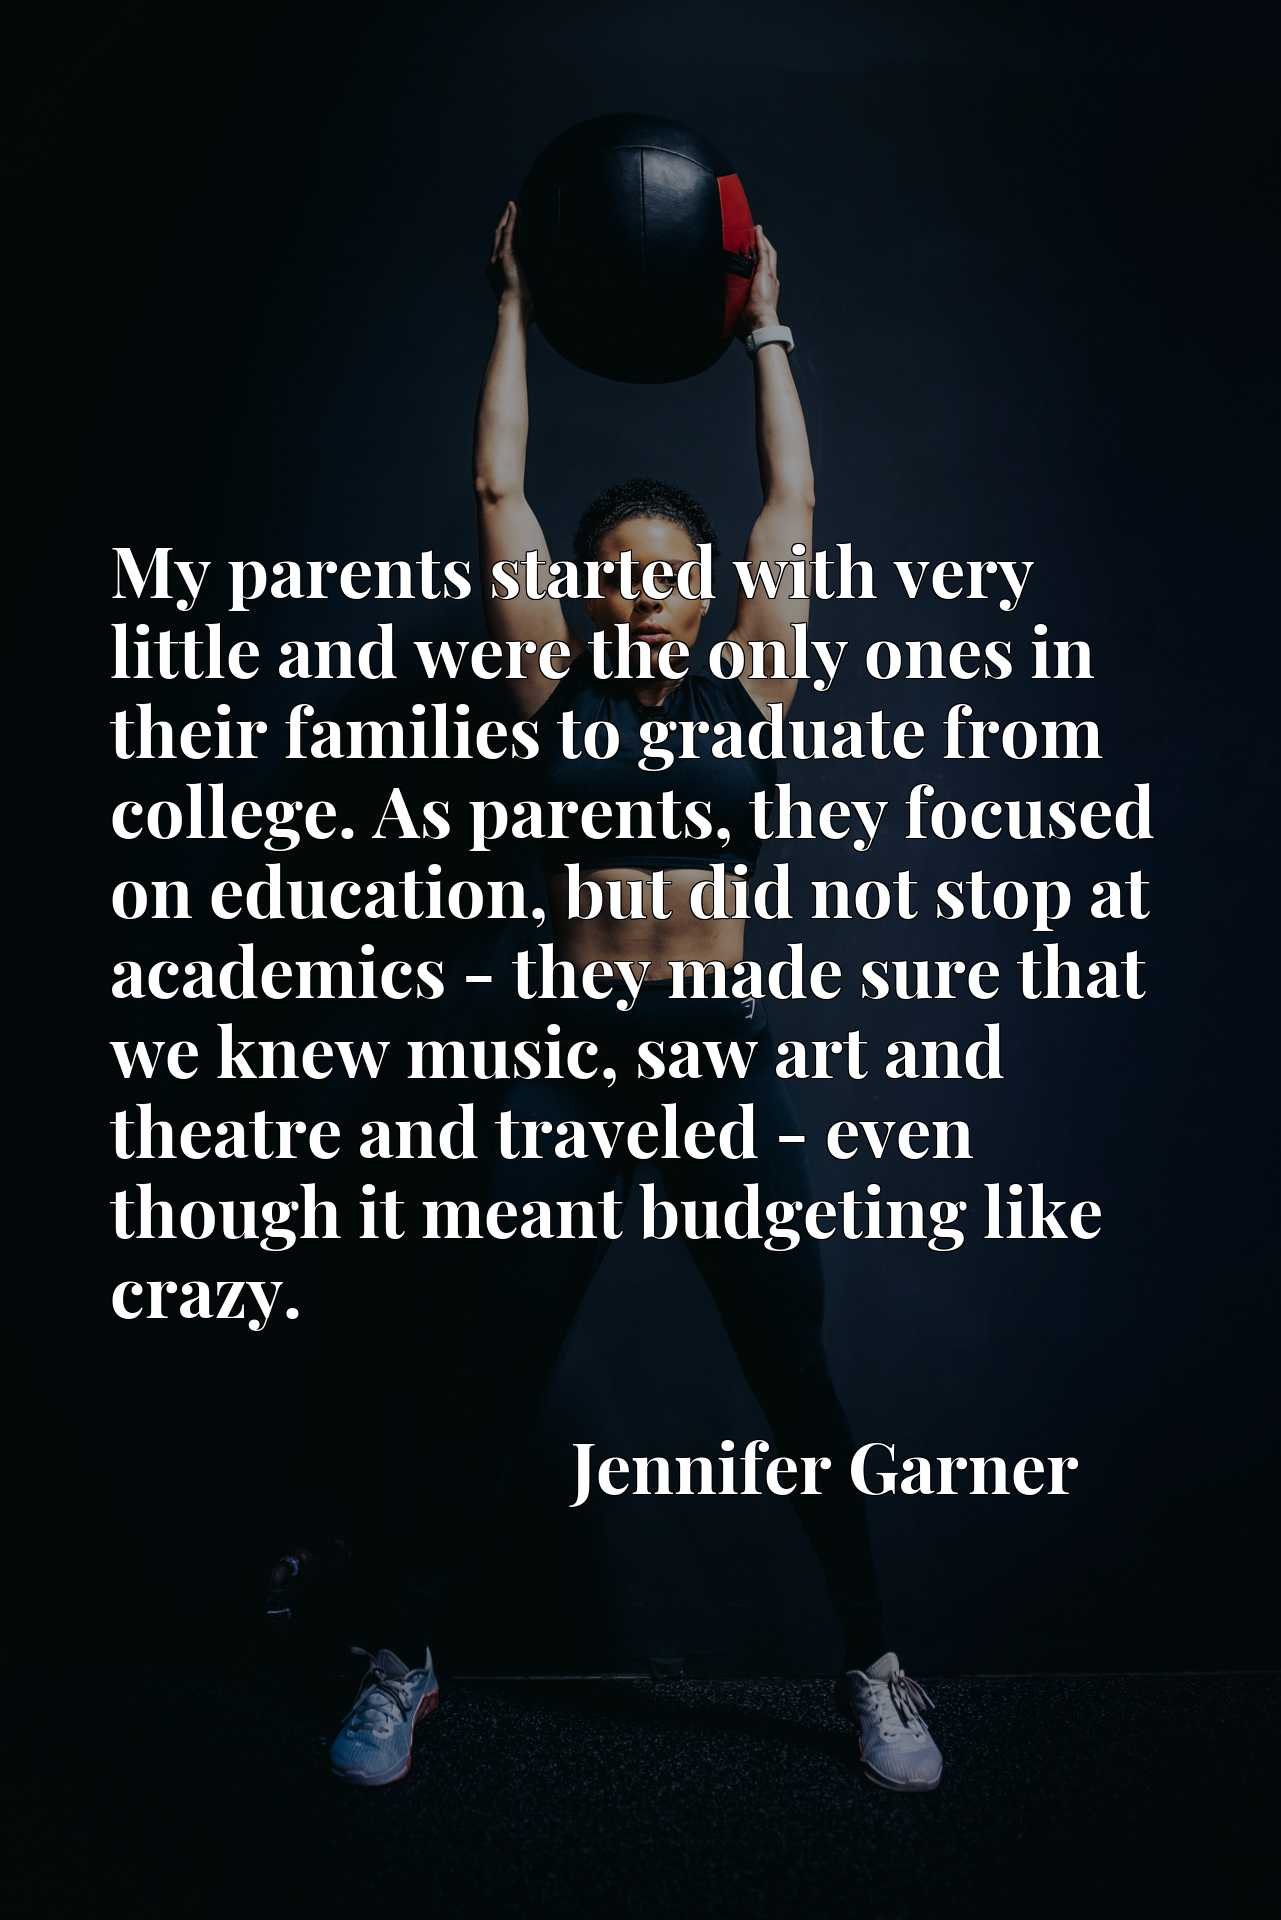 My parents started with very little and were the only ones in their families to graduate from college. As parents, they focused on education, but did not stop at academics - they made sure that we knew music, saw art and theatre and traveled - even though it meant budgeting like crazy.